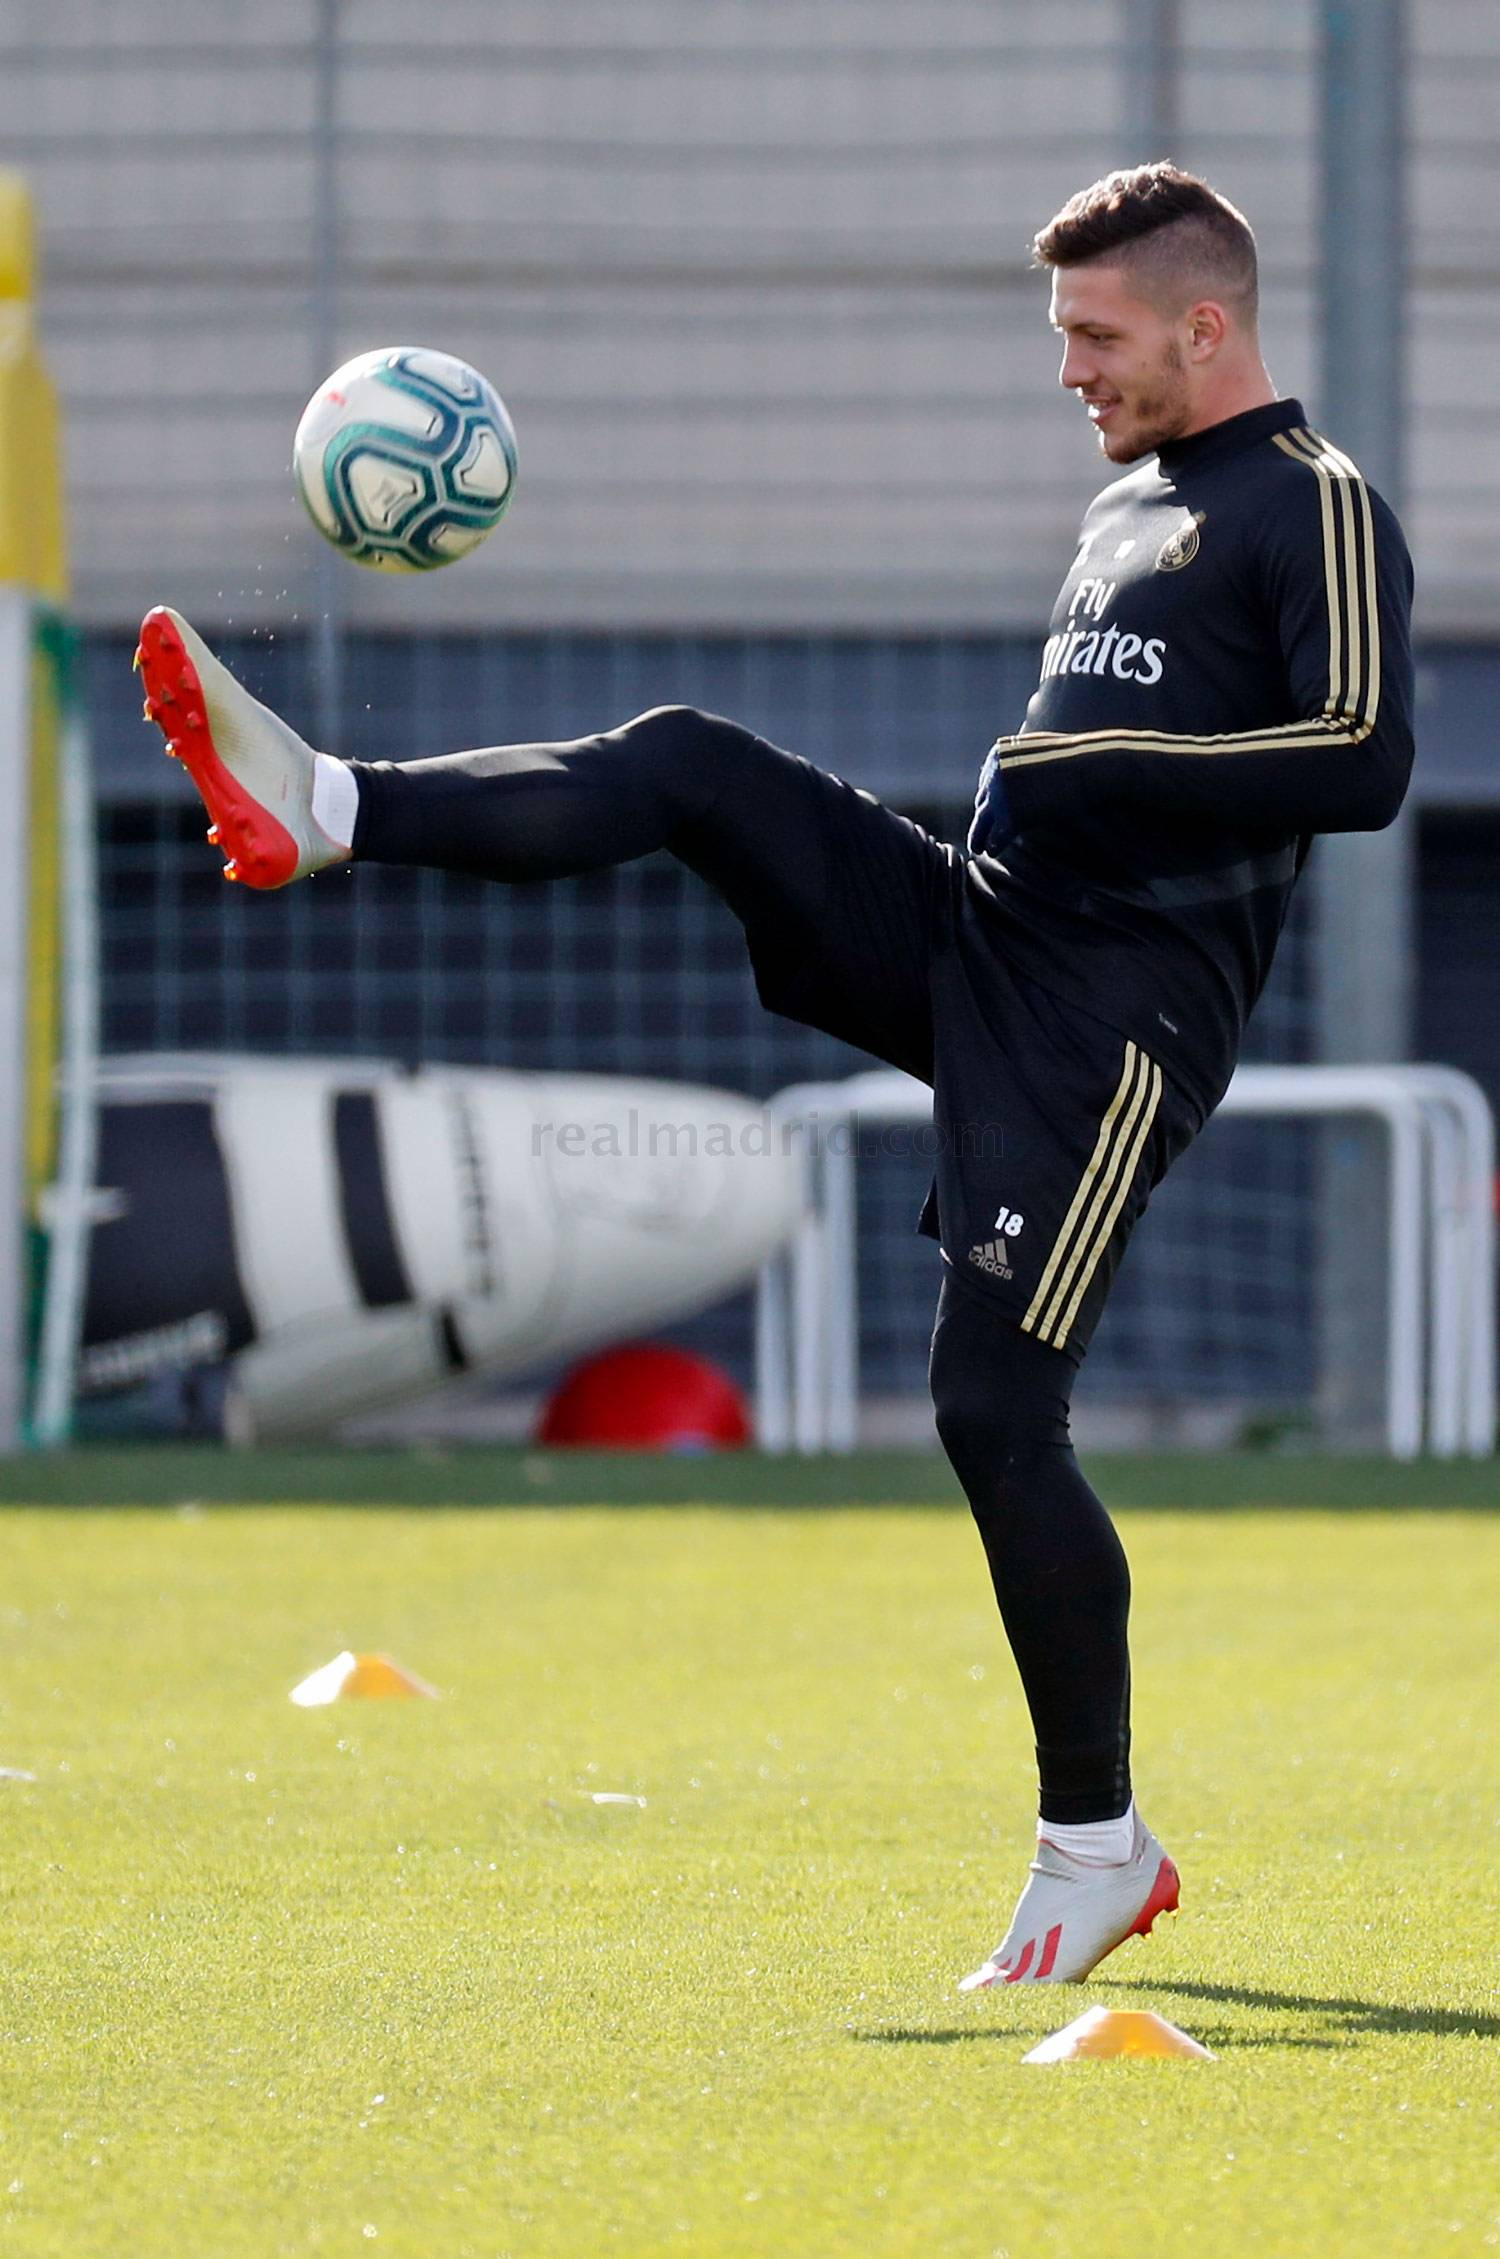 Real Madrid - Entrenamiento del Real Madrid  - 15-11-2019